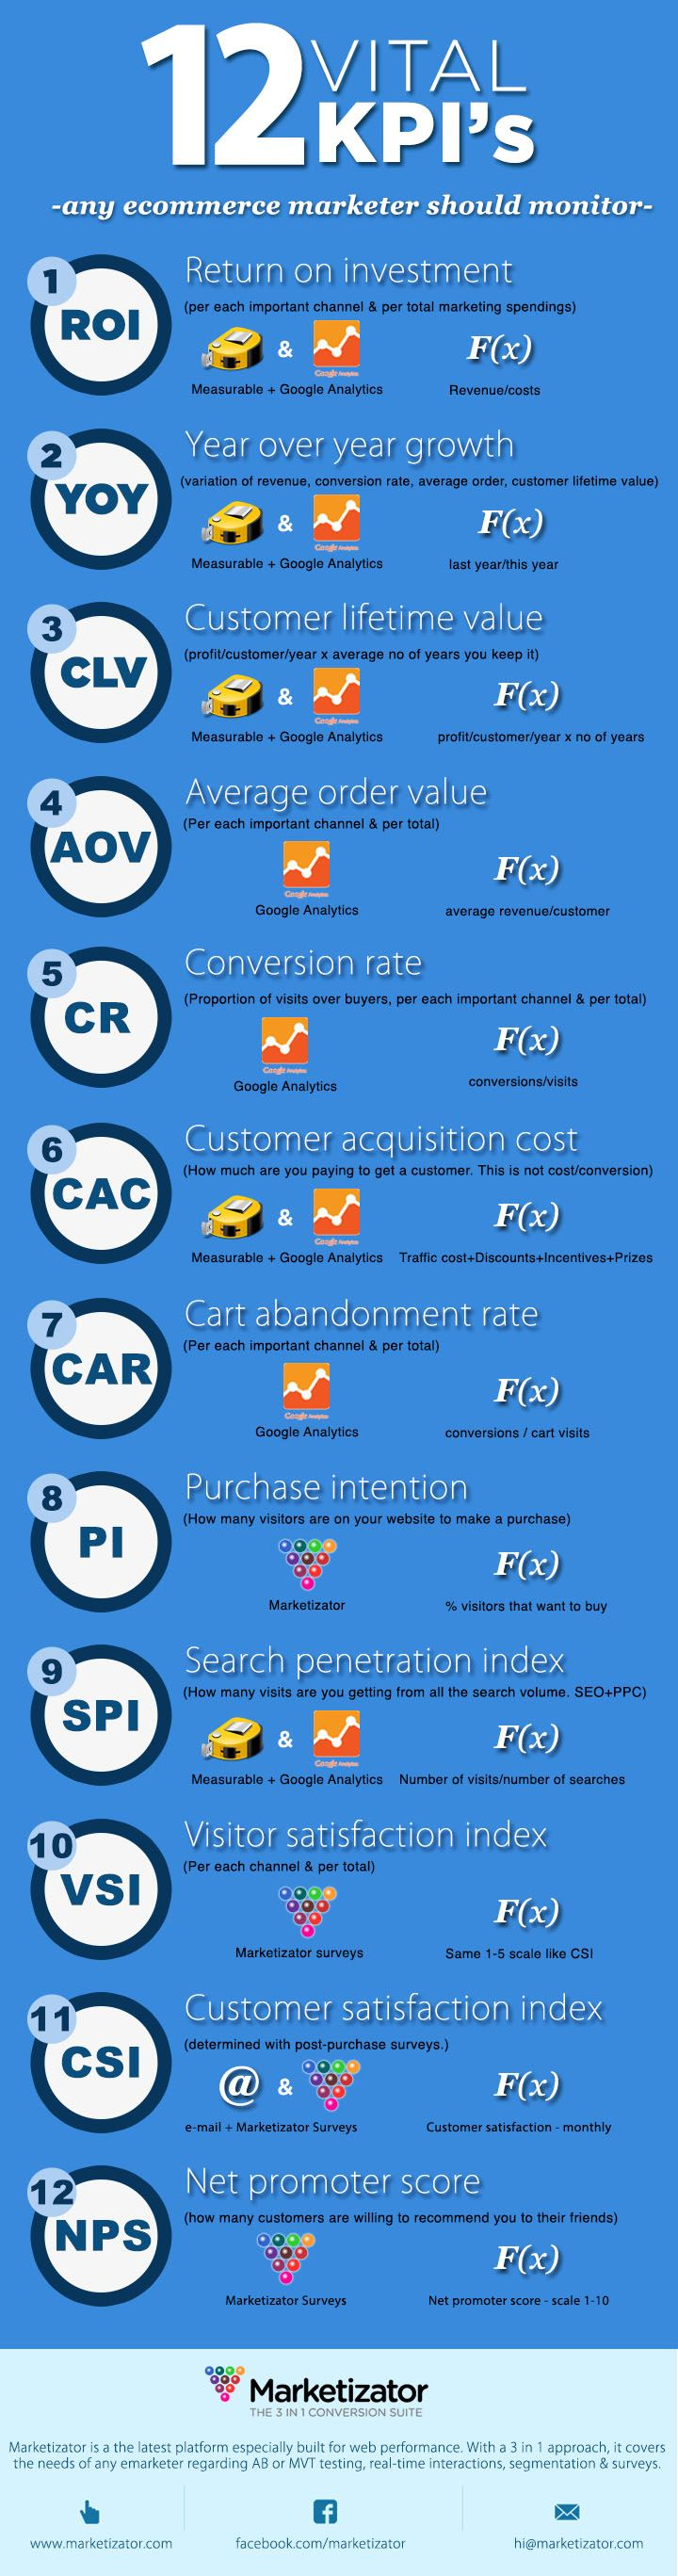 12 vital KPI's for e-commerce